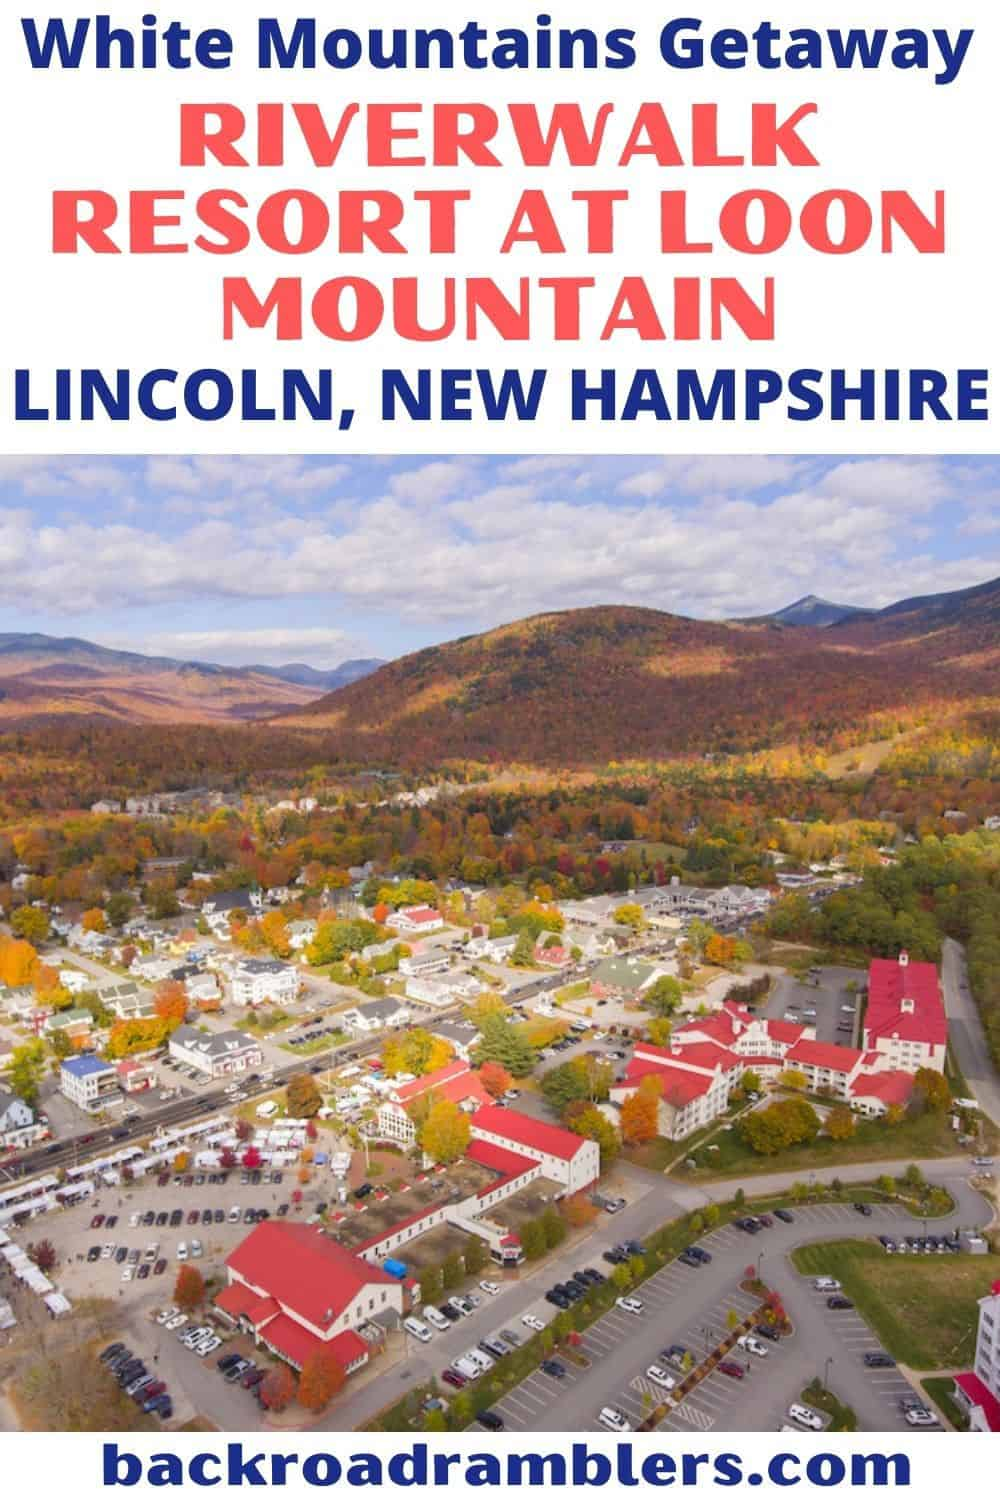 An aerial view of Lincoln, New Hampshire and RiverWalk Resort at Loon Mountain in the fall. Text overlay: White Mountains Getaway - RiverWalk Resort at Loon Mountain in Lincoln, New Hampshire.